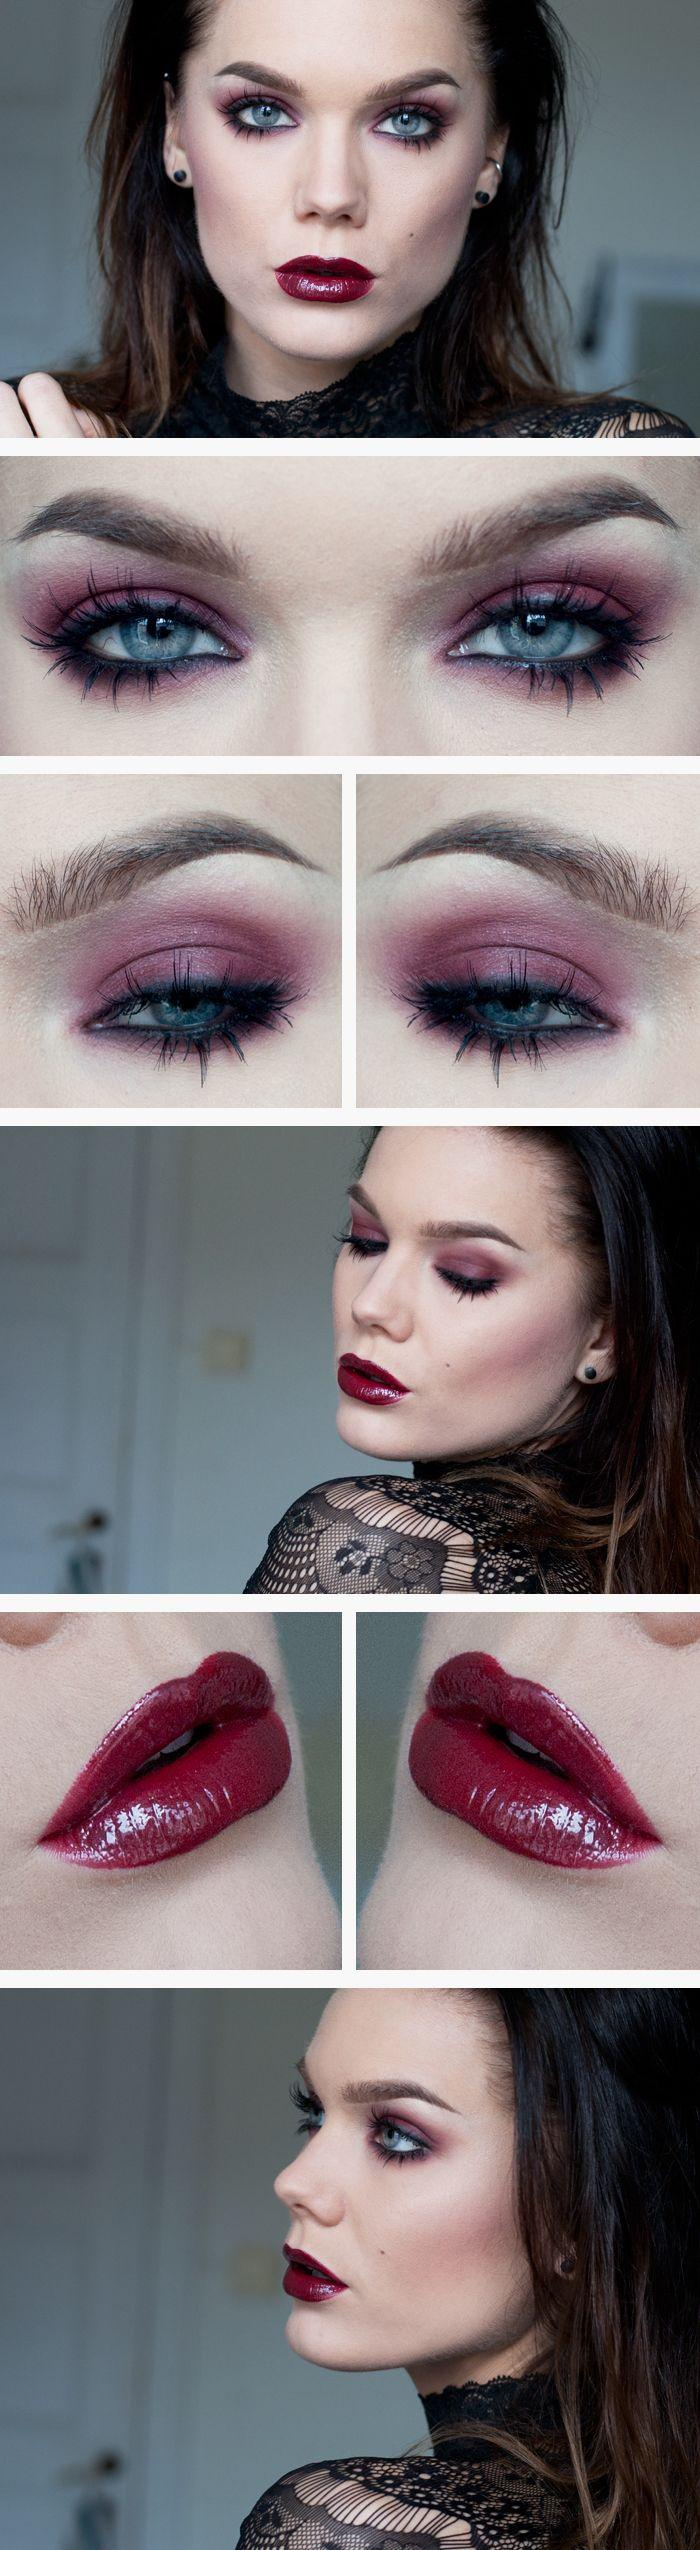 Свадьба - What`s The Latest And Hotest 2015 Makeup Trends?